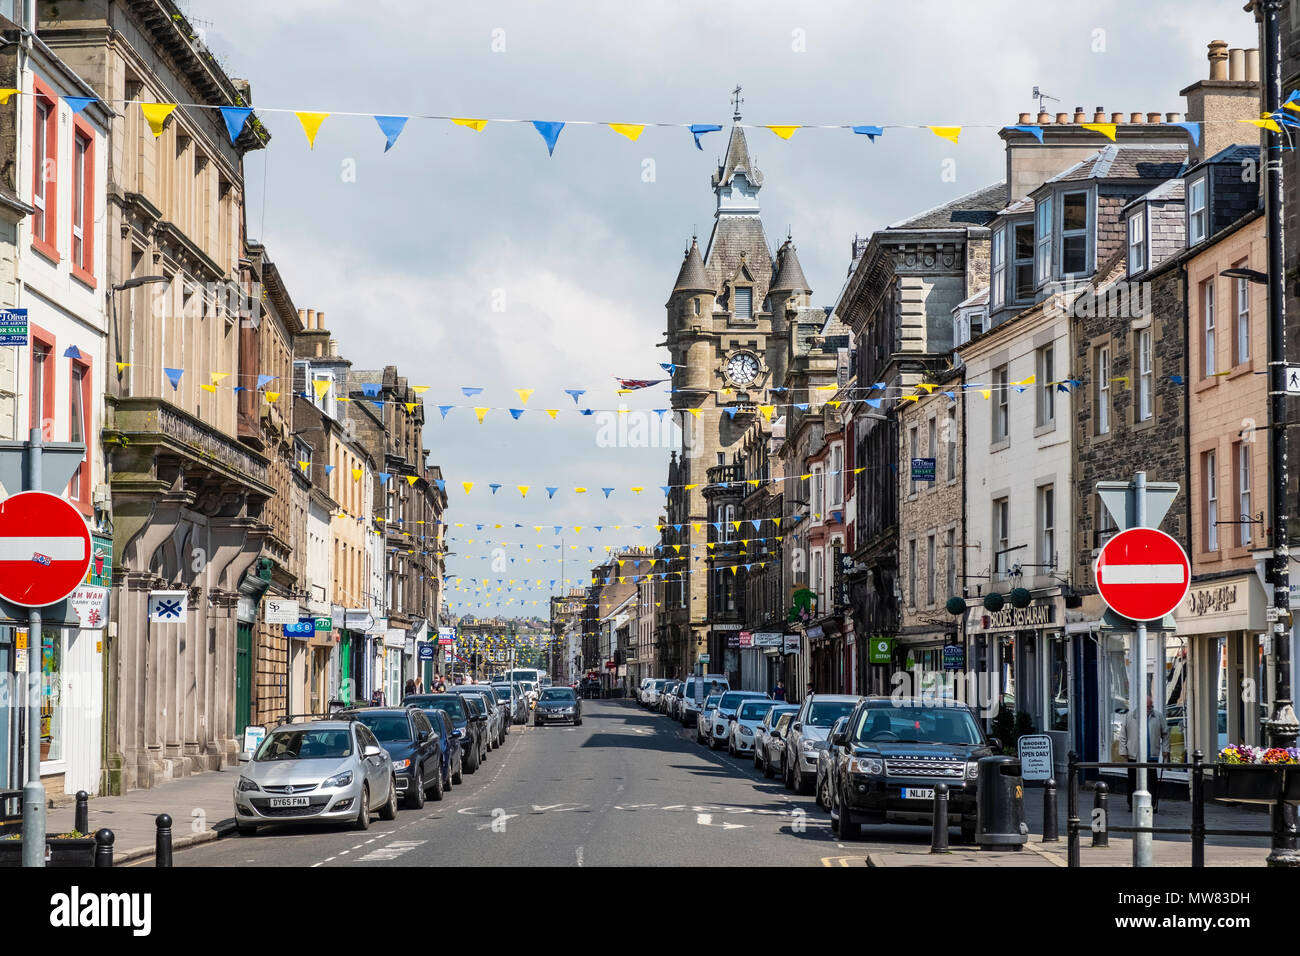 View of the High Street in Hawick, Scottish Borders, Scotland,UK - Stock Image